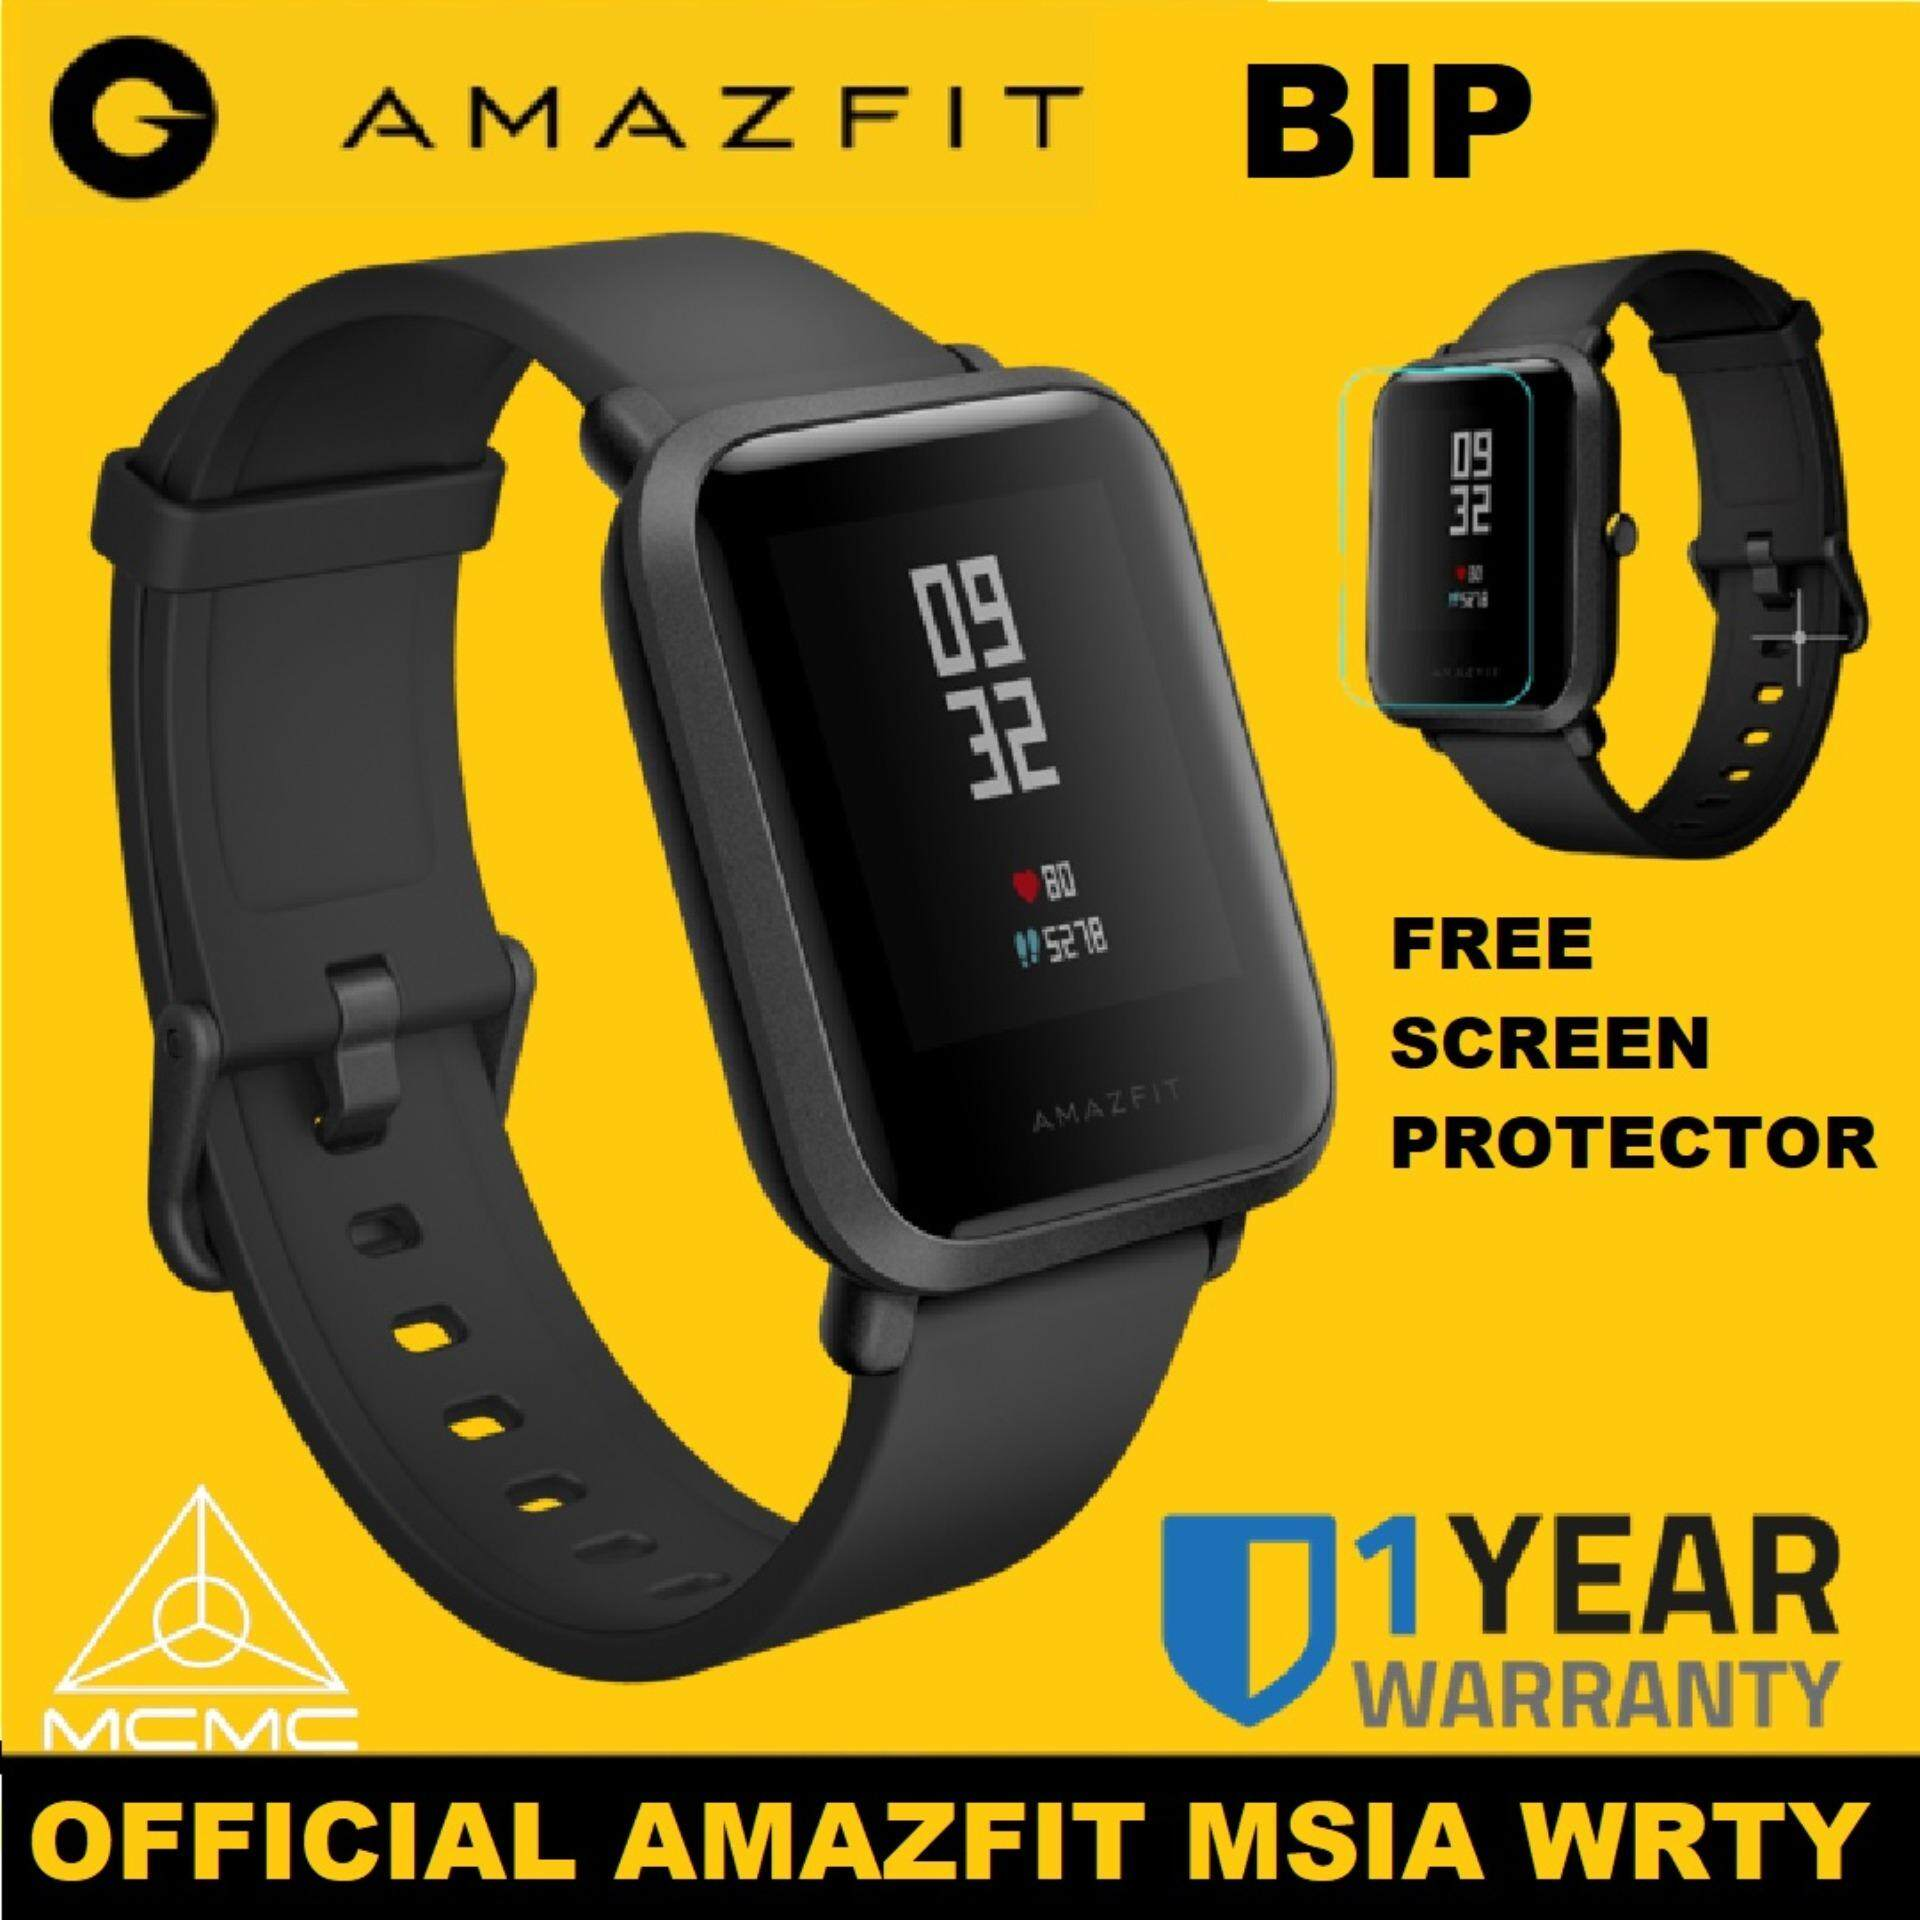 [OFFICIAL AMAZFIT MSIA WRTY] XIAOMI Mi Fit Huami INTERNATIONAL ENGLISH  Amazfit BIP Smartwatch Band 1 28